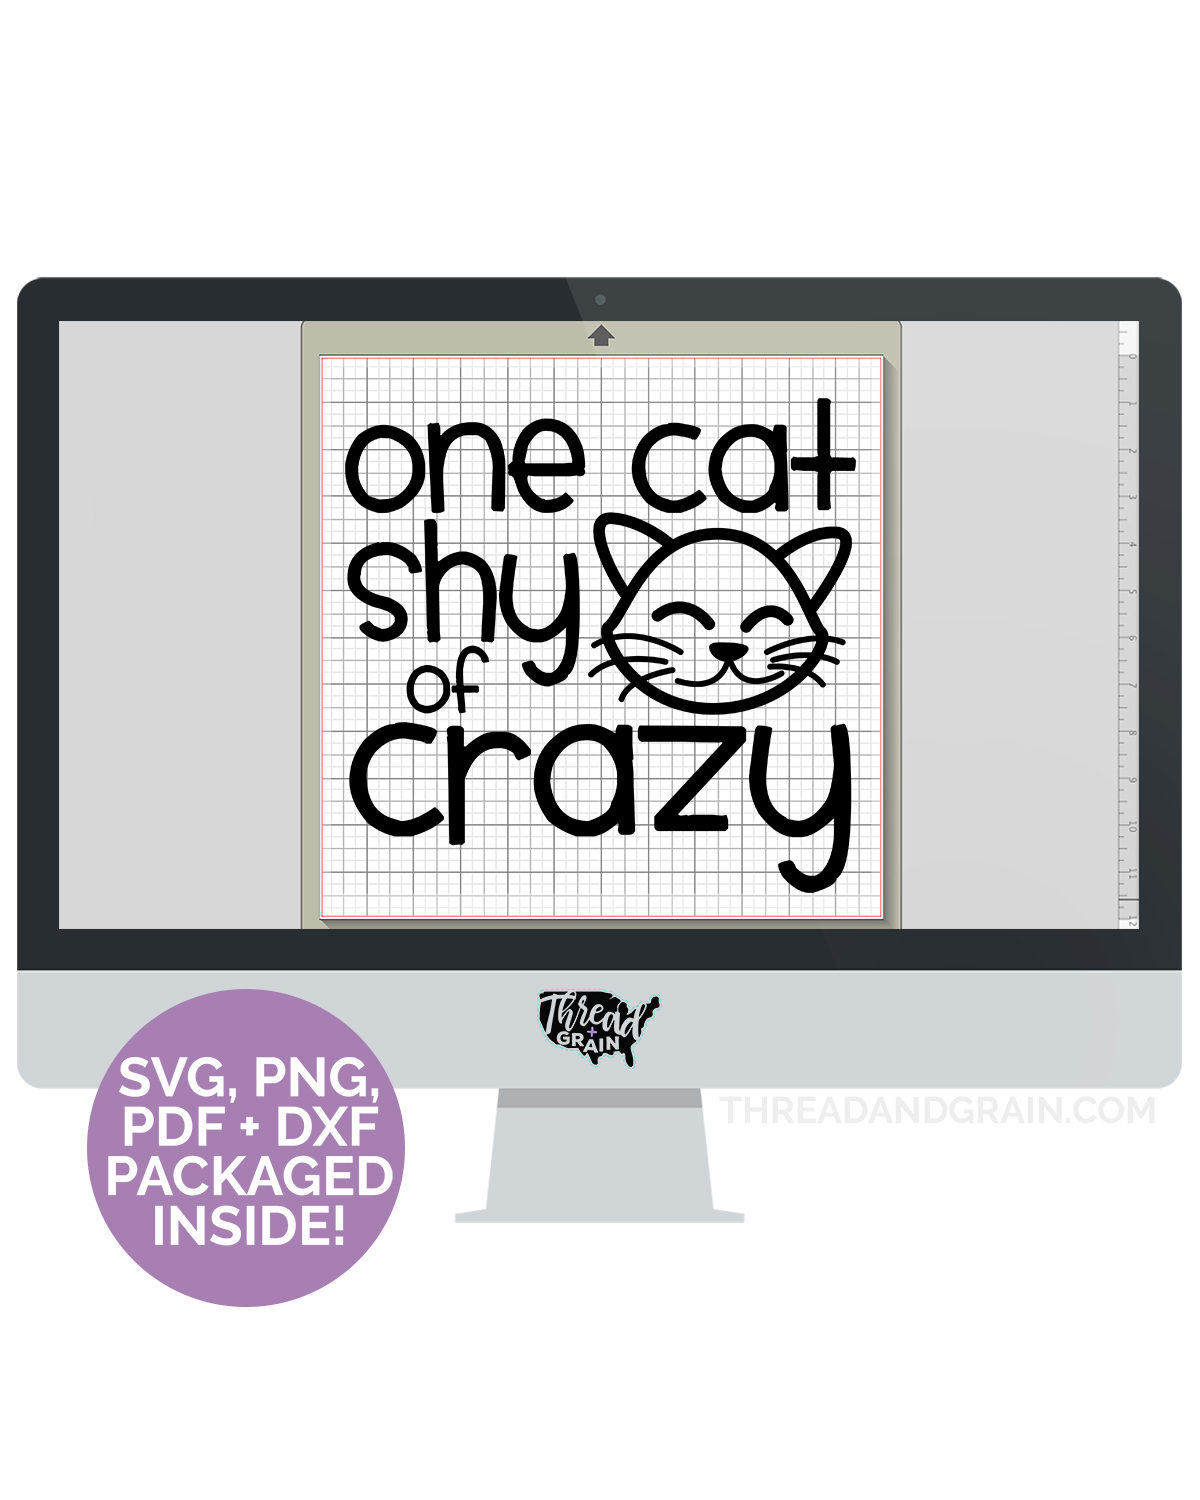 One Cat Shy of Crazy DIGITAL CUT FILE